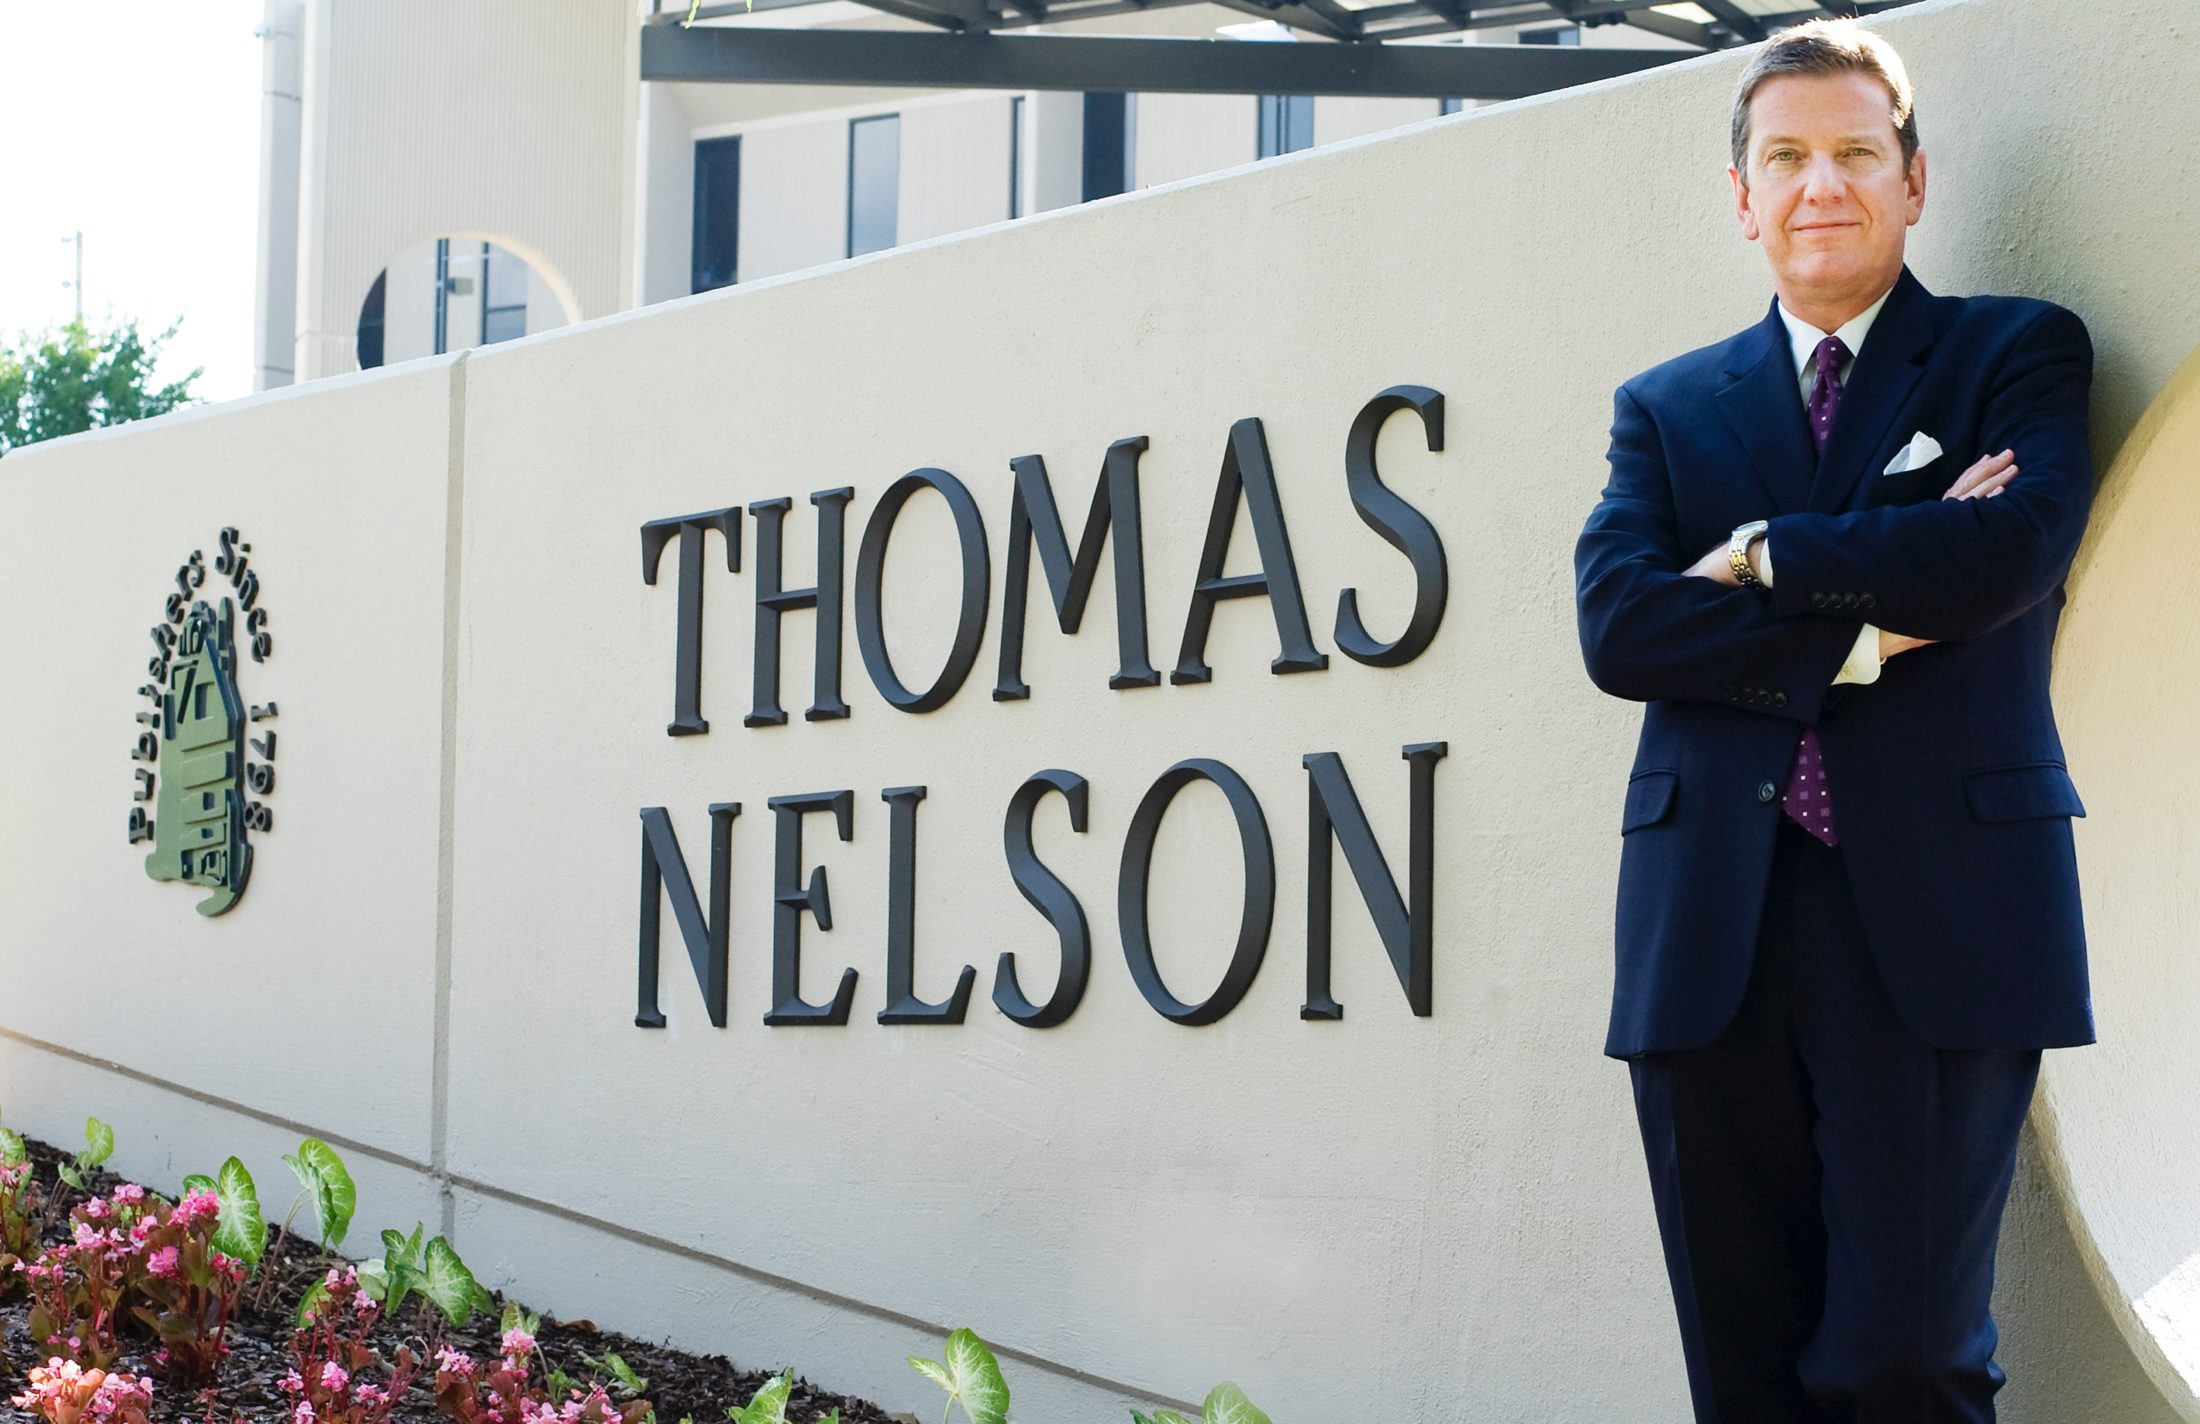 Michael Hyatt, Thomas Nelson CEO